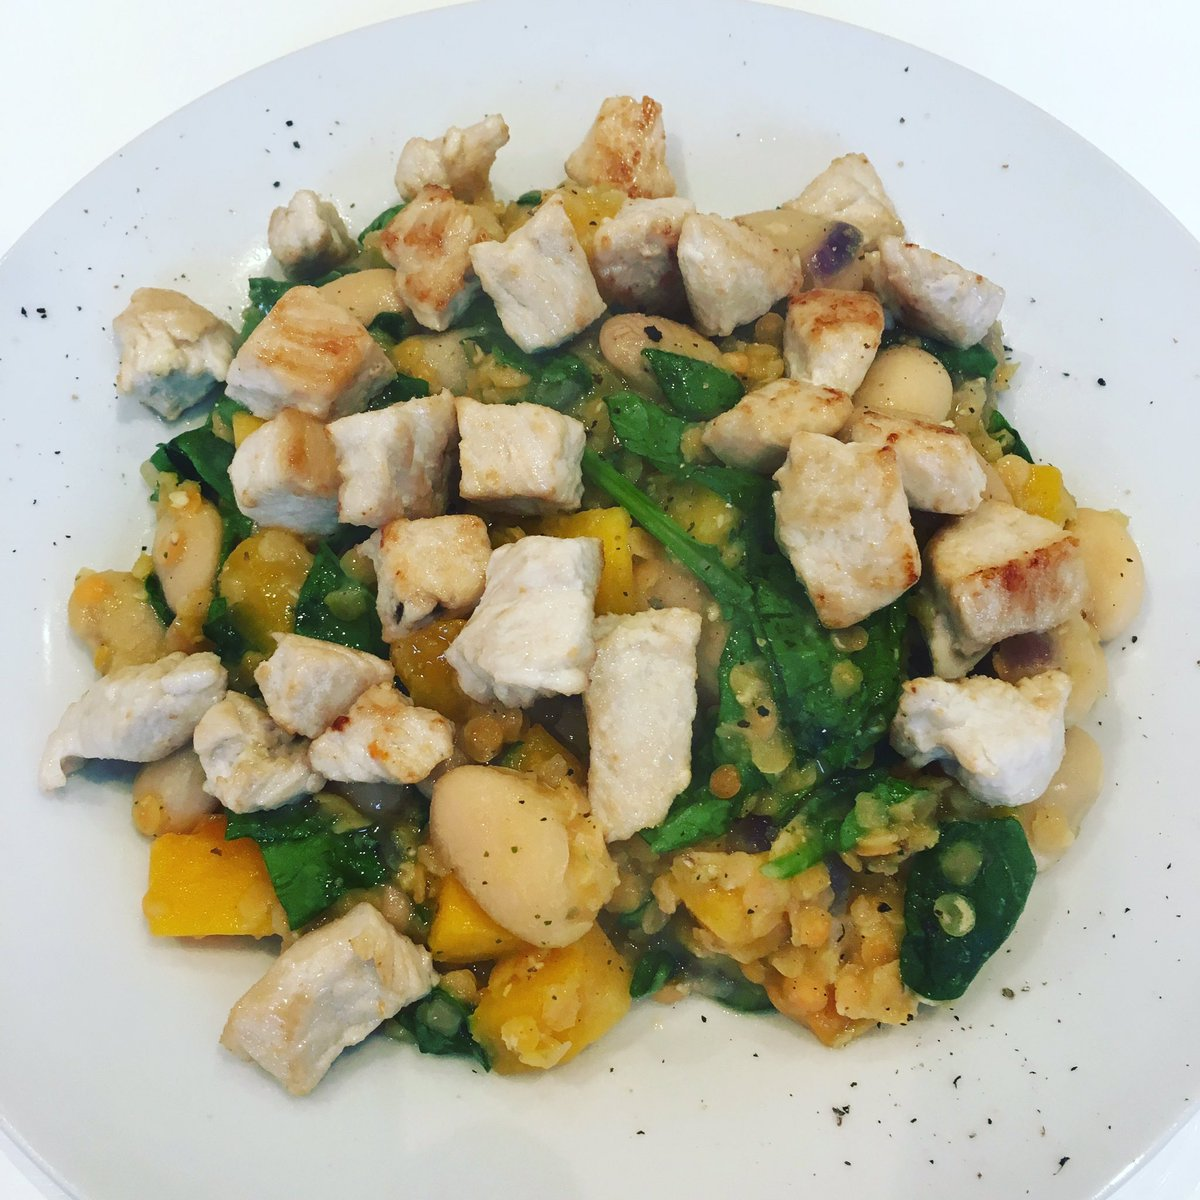 #Dinner - turkey, butternut squash, white bean and lentil winter warmer 🥄   https://t.co/7WeAvXVoKS https://t.co/HpbYLSzILO